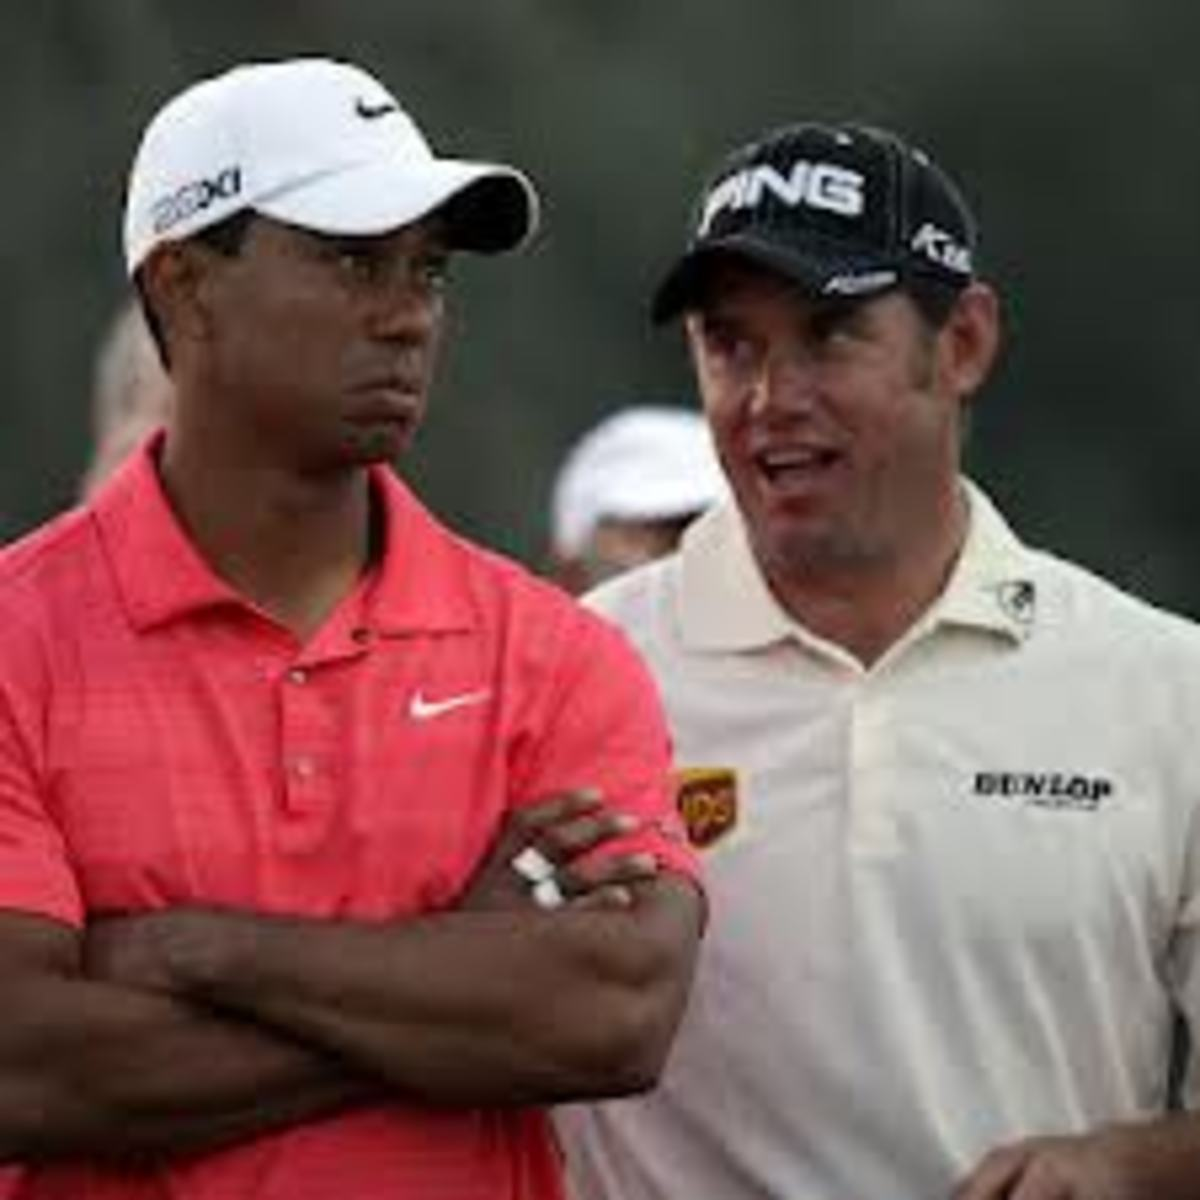 Lee Westwood asks TW something that makes tiger appear suddenly tight-lipped.